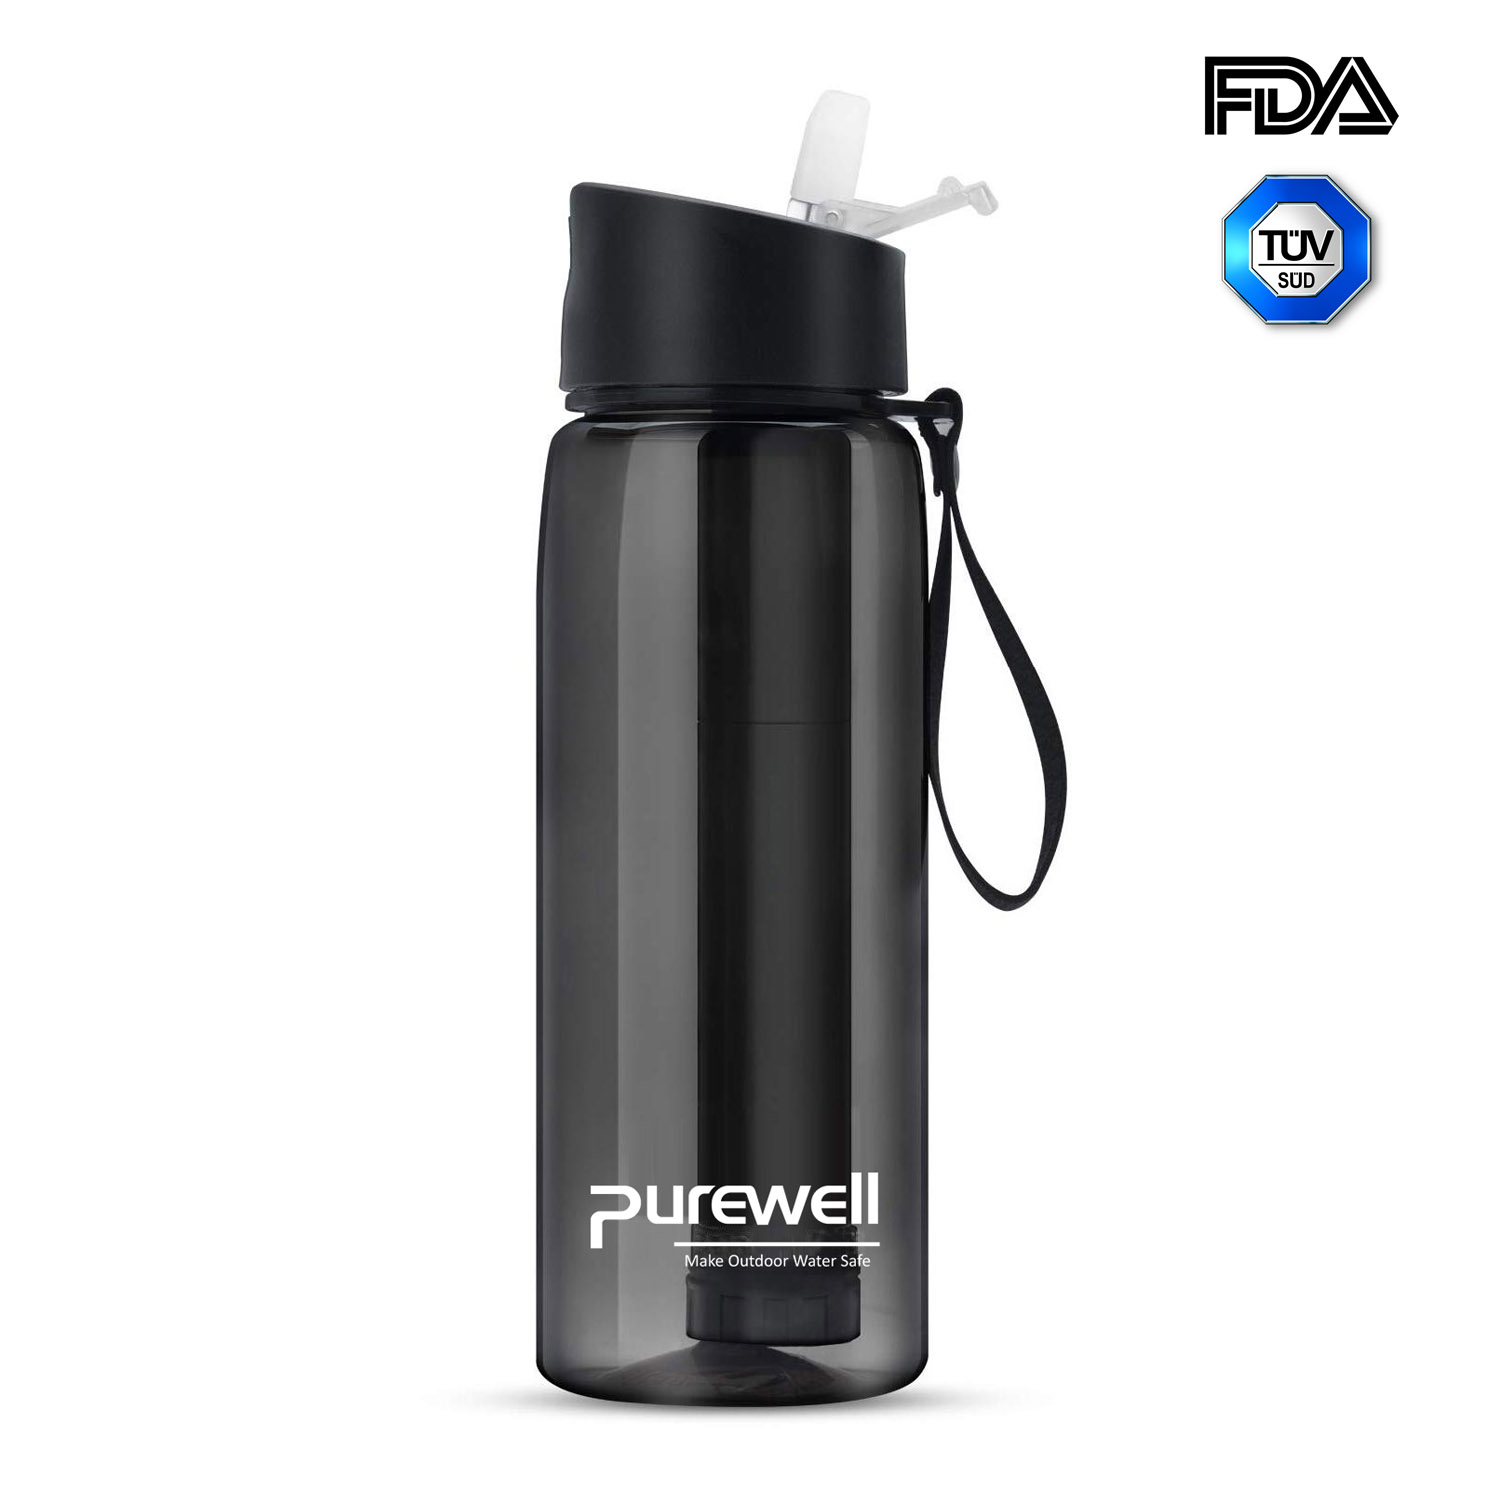 Purewell Array image26